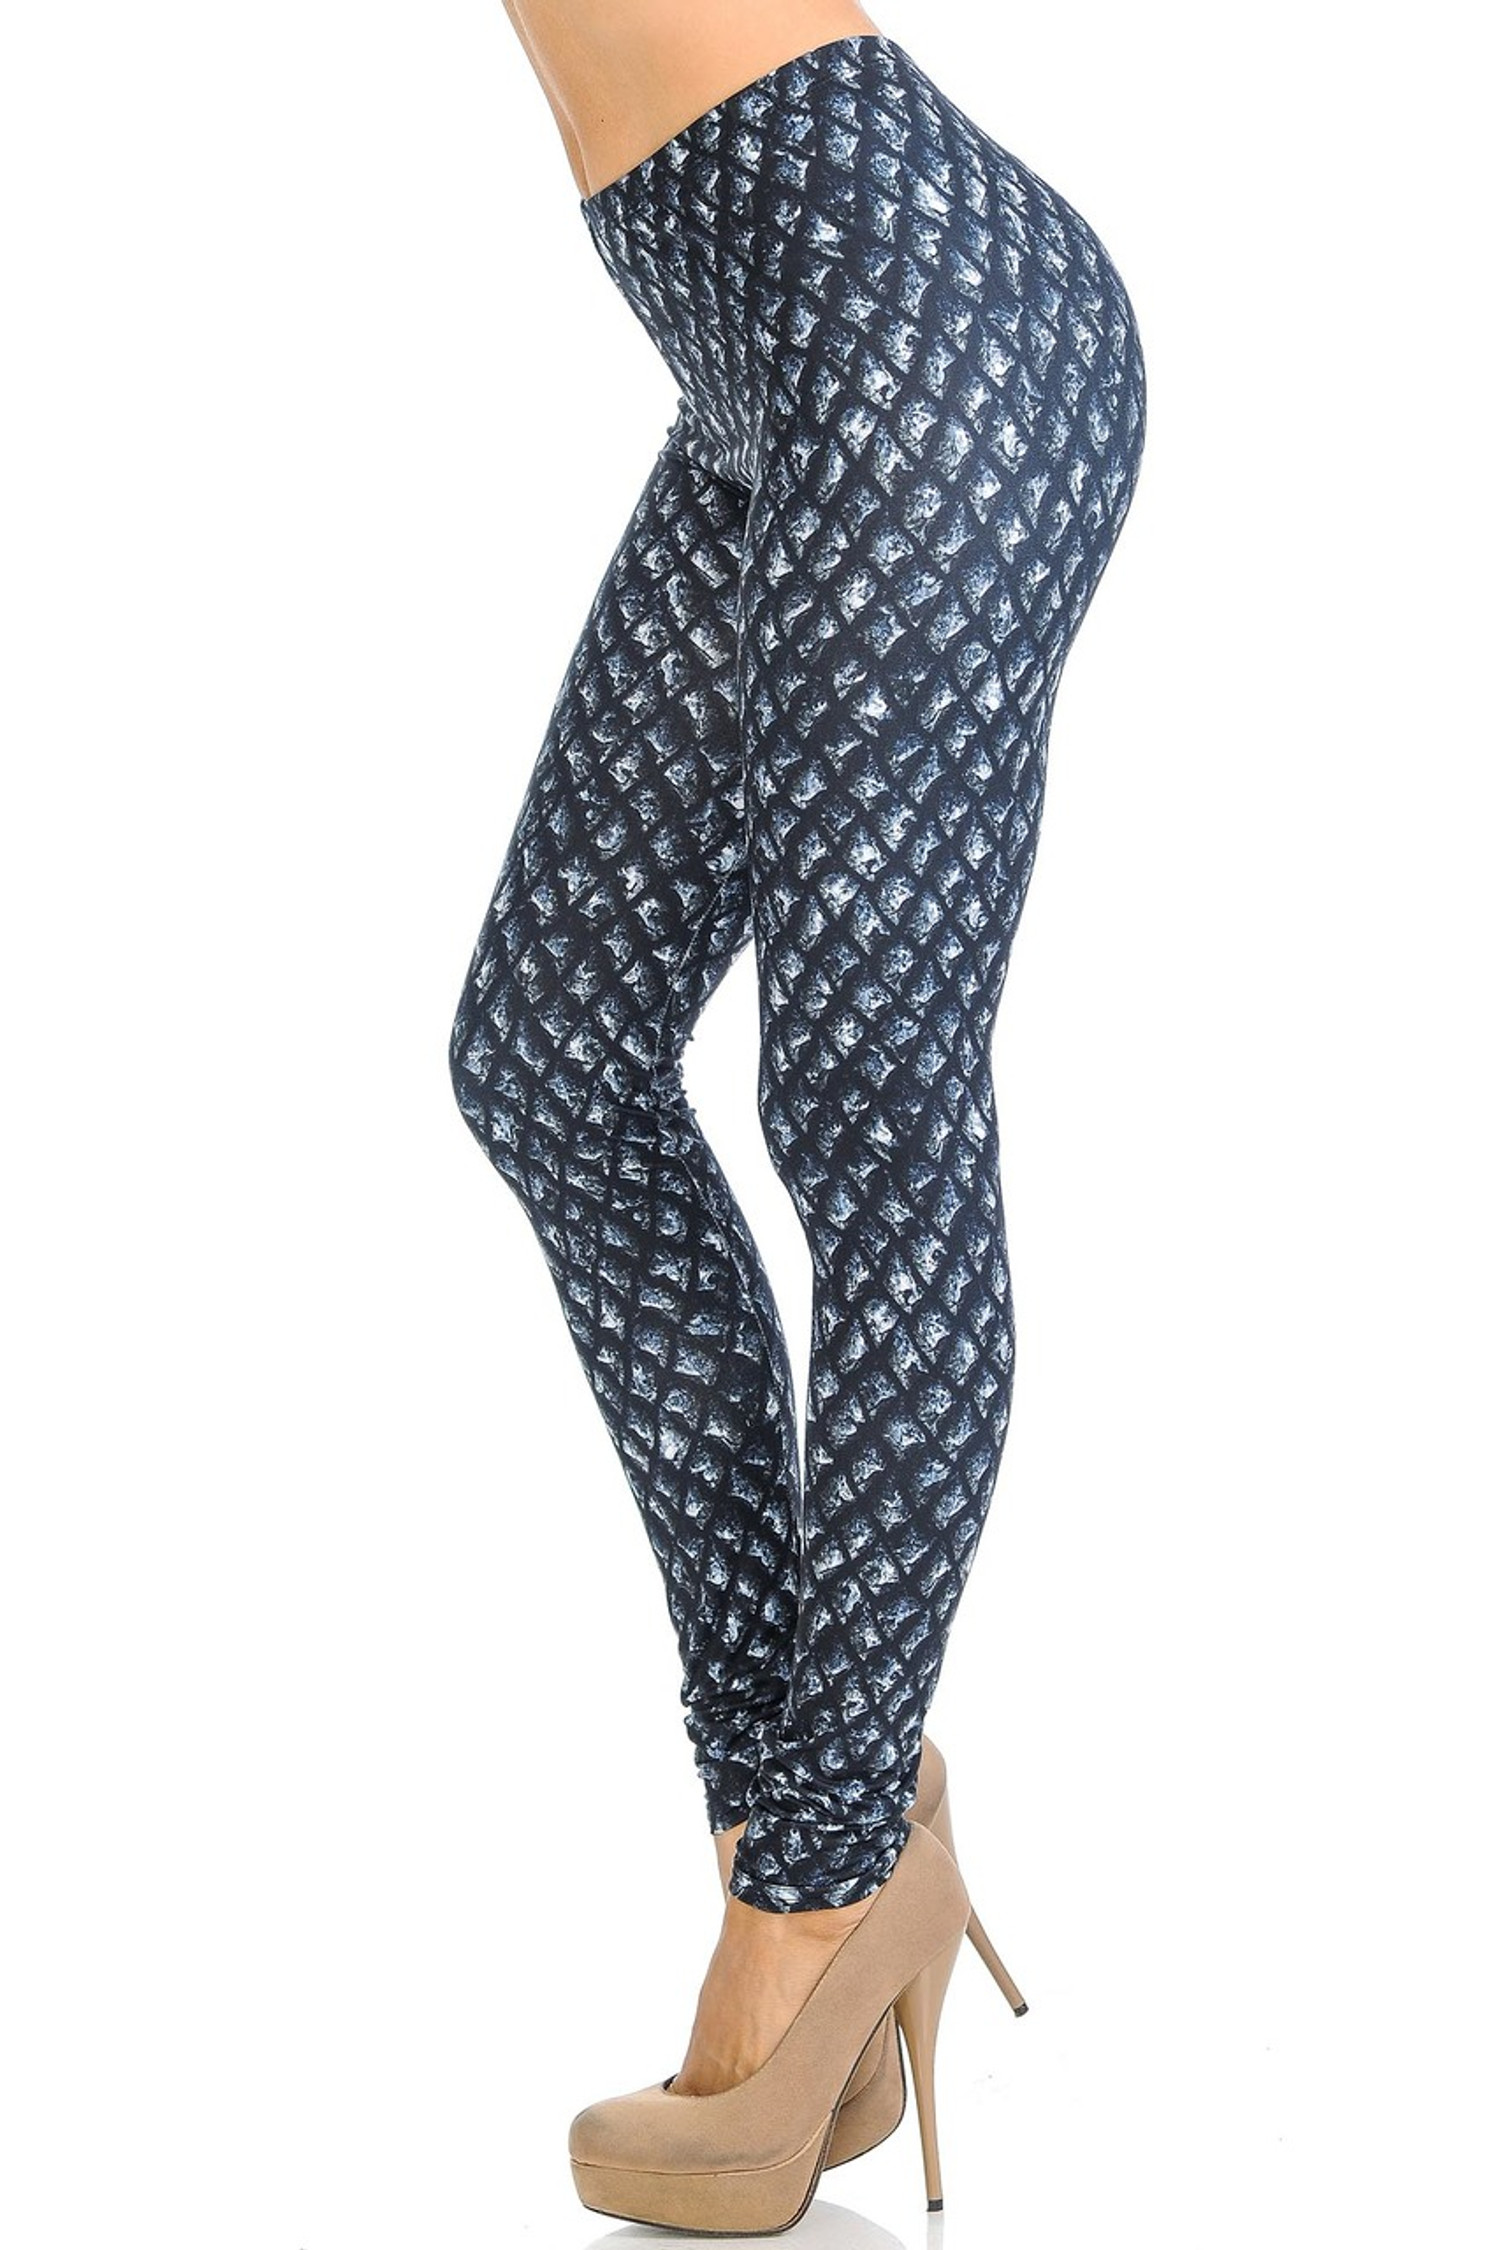 Creamy Soft Black Dragon Scale Leggings - Signature Collection